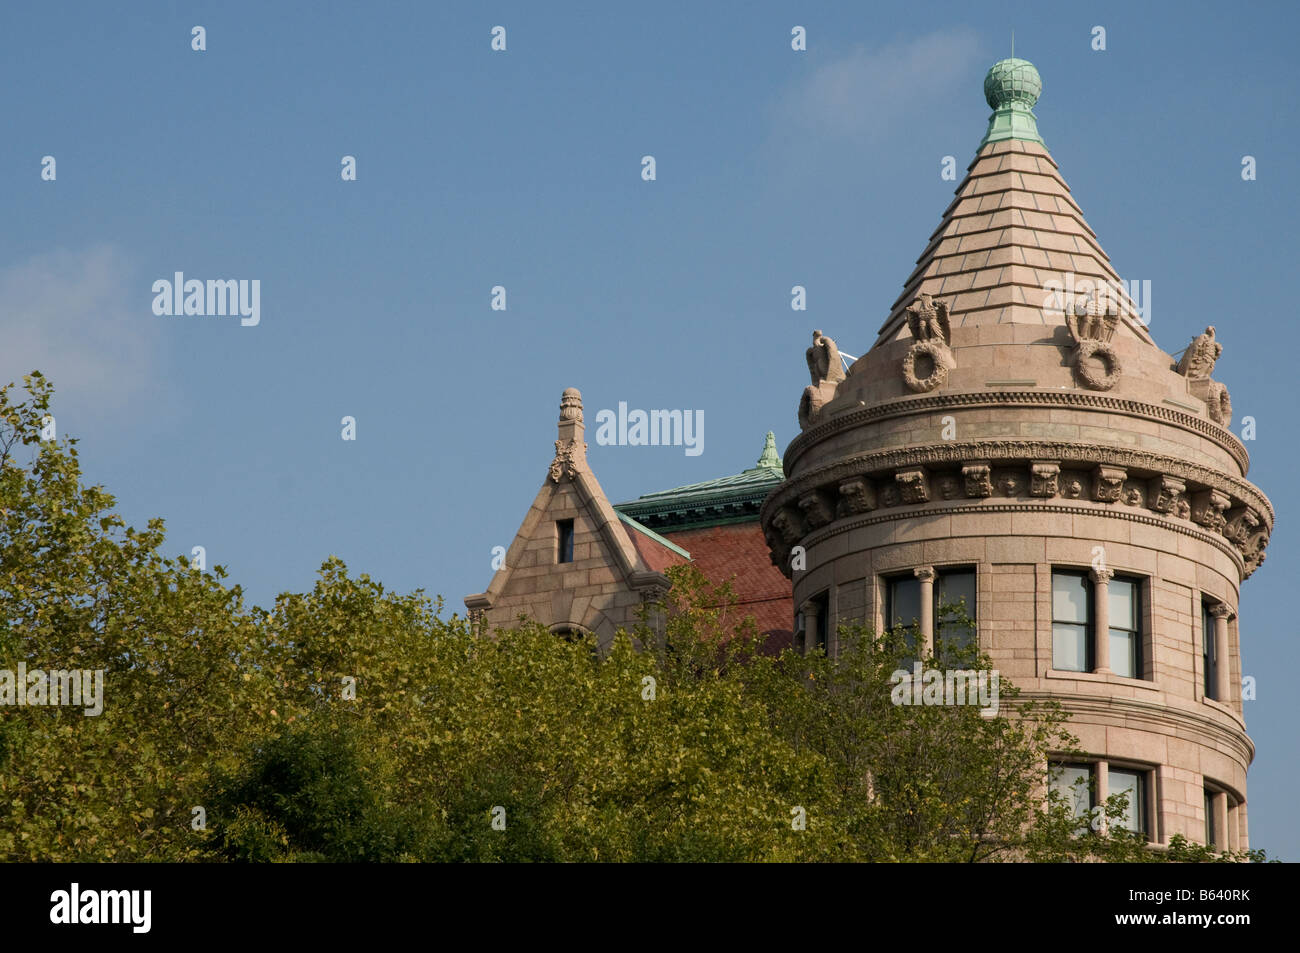 Turret of the American Museum of Natural History on the Upper West Side of Manhattan, New York, USA - Stock Image